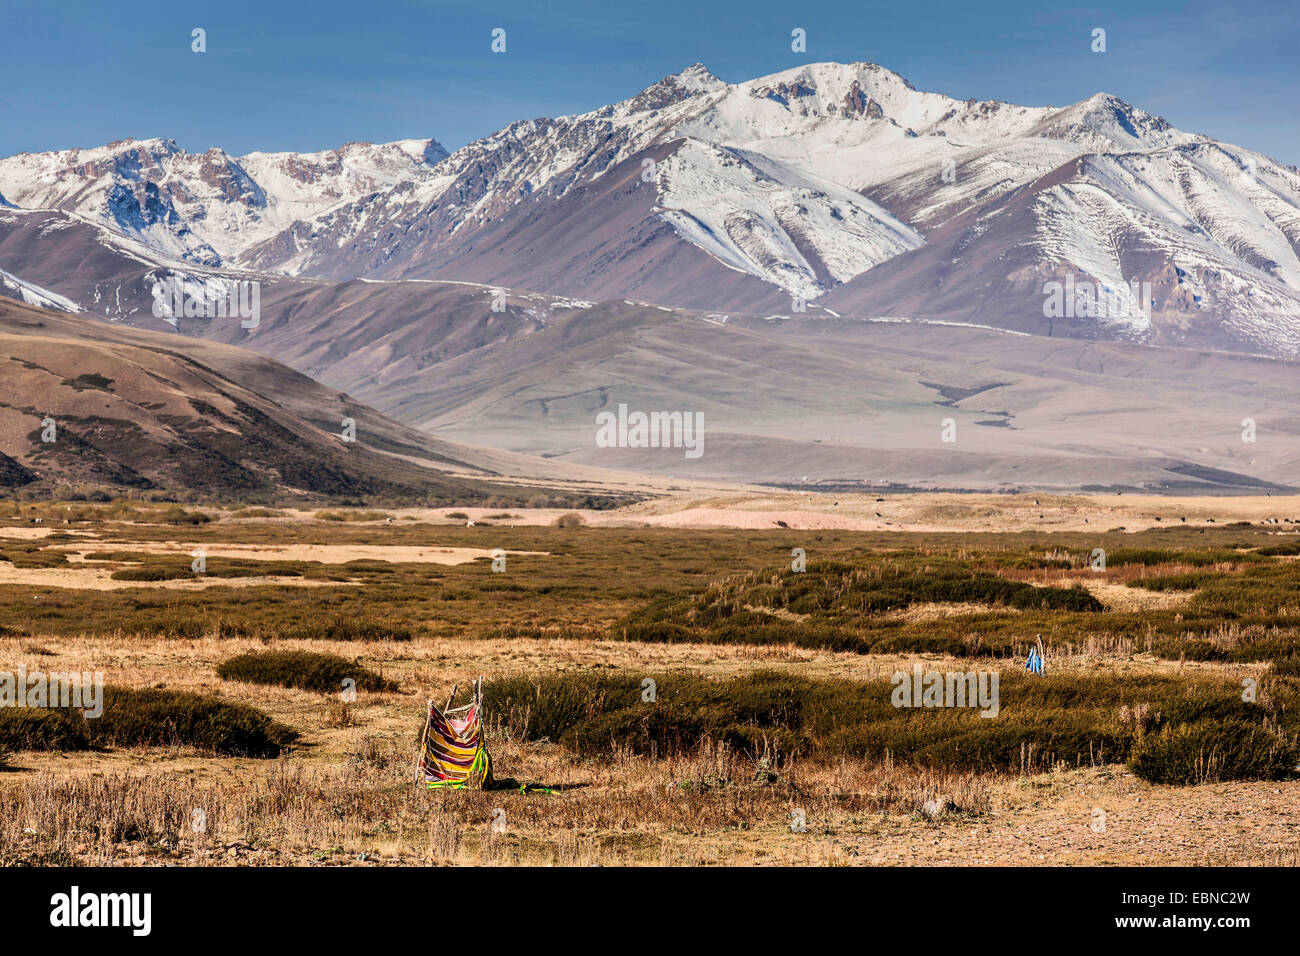 open air toilette in steppe, snow-caped mountain range in background, Kyrgyzstan, Djalalabad, Taskoemuer - Stock Image